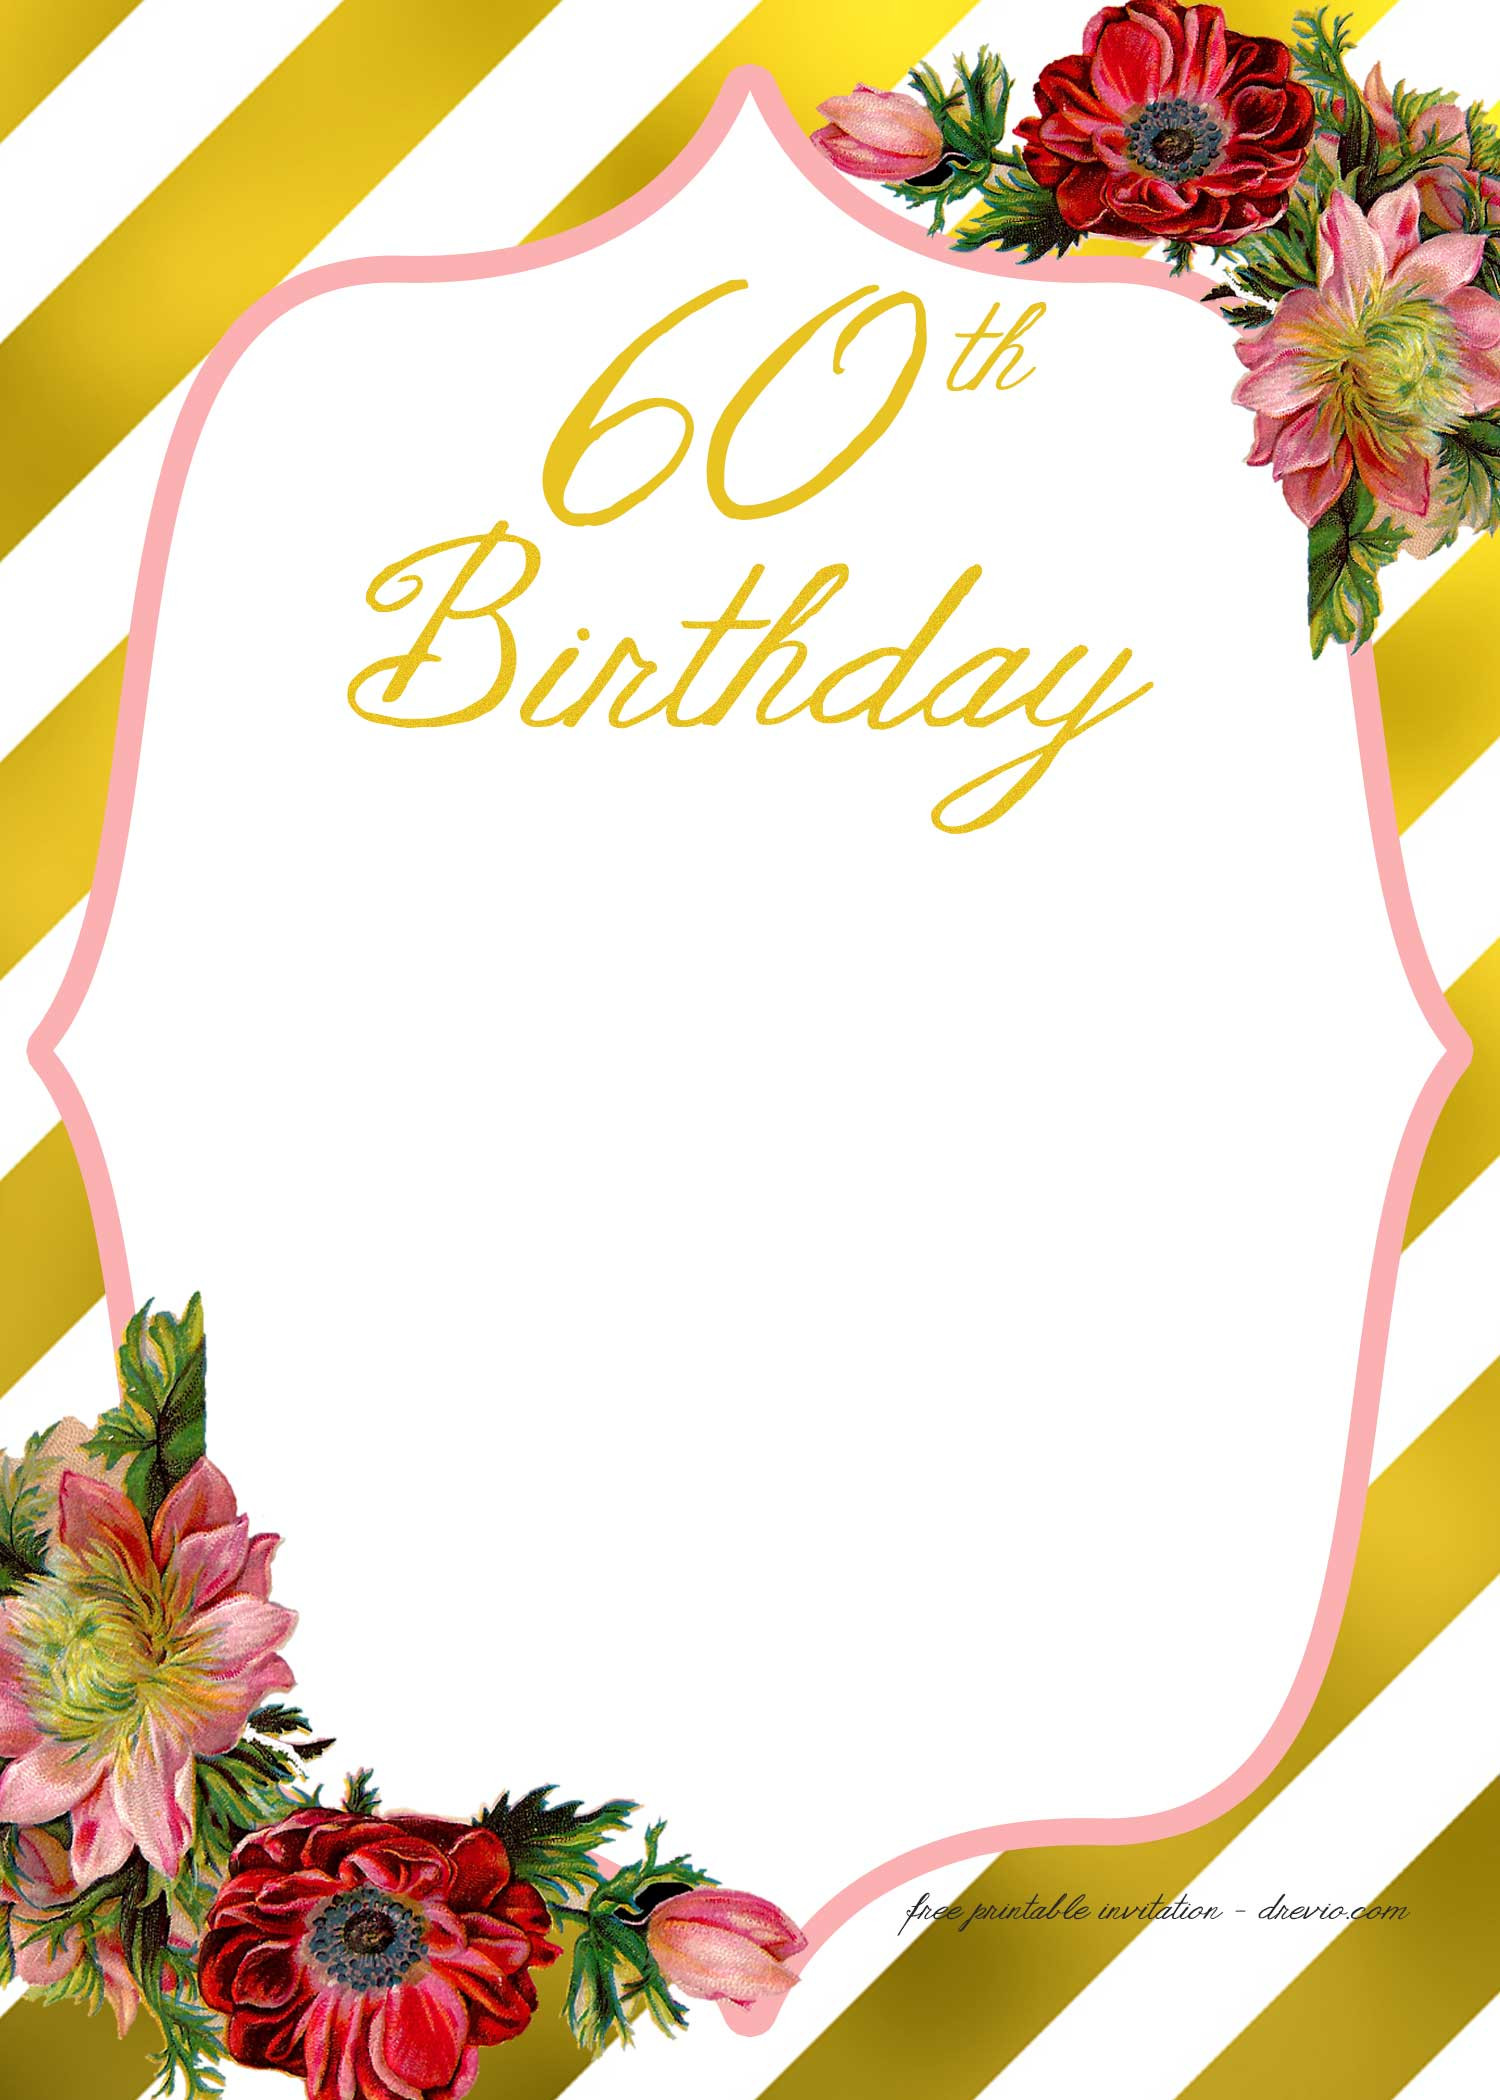 Free Templates For Birthday Invitations  Adult Birthday Invitations Template for 50th years old